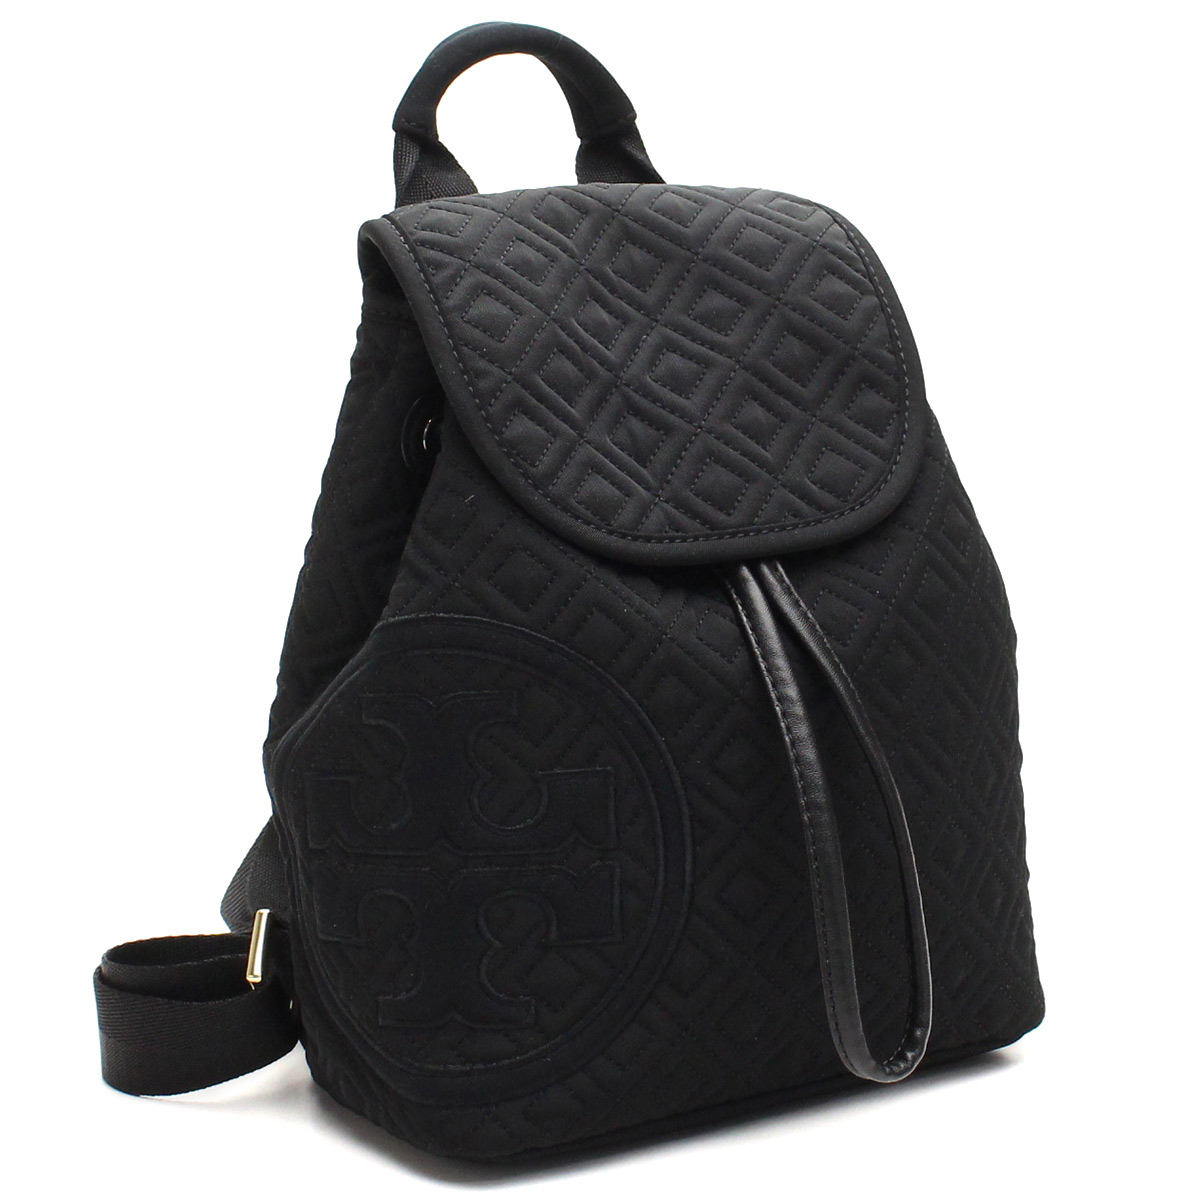 306c2d77fe1 Bighit The total brand wholesale  Tory Burch (TORY BURCH) PENN QUILTED  backpack 41159566-001 BLACK black( taxfree send by EMS authentic A brand  new item ) ...